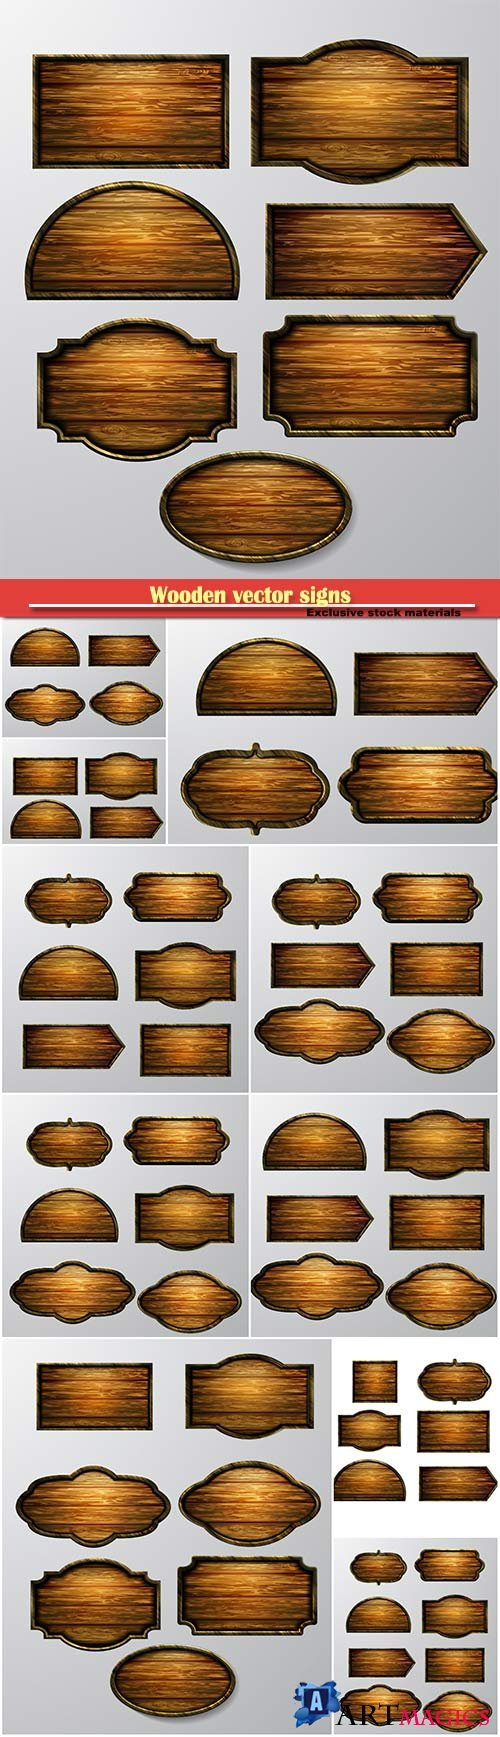 Wooden vector signs, vector icon set on white background